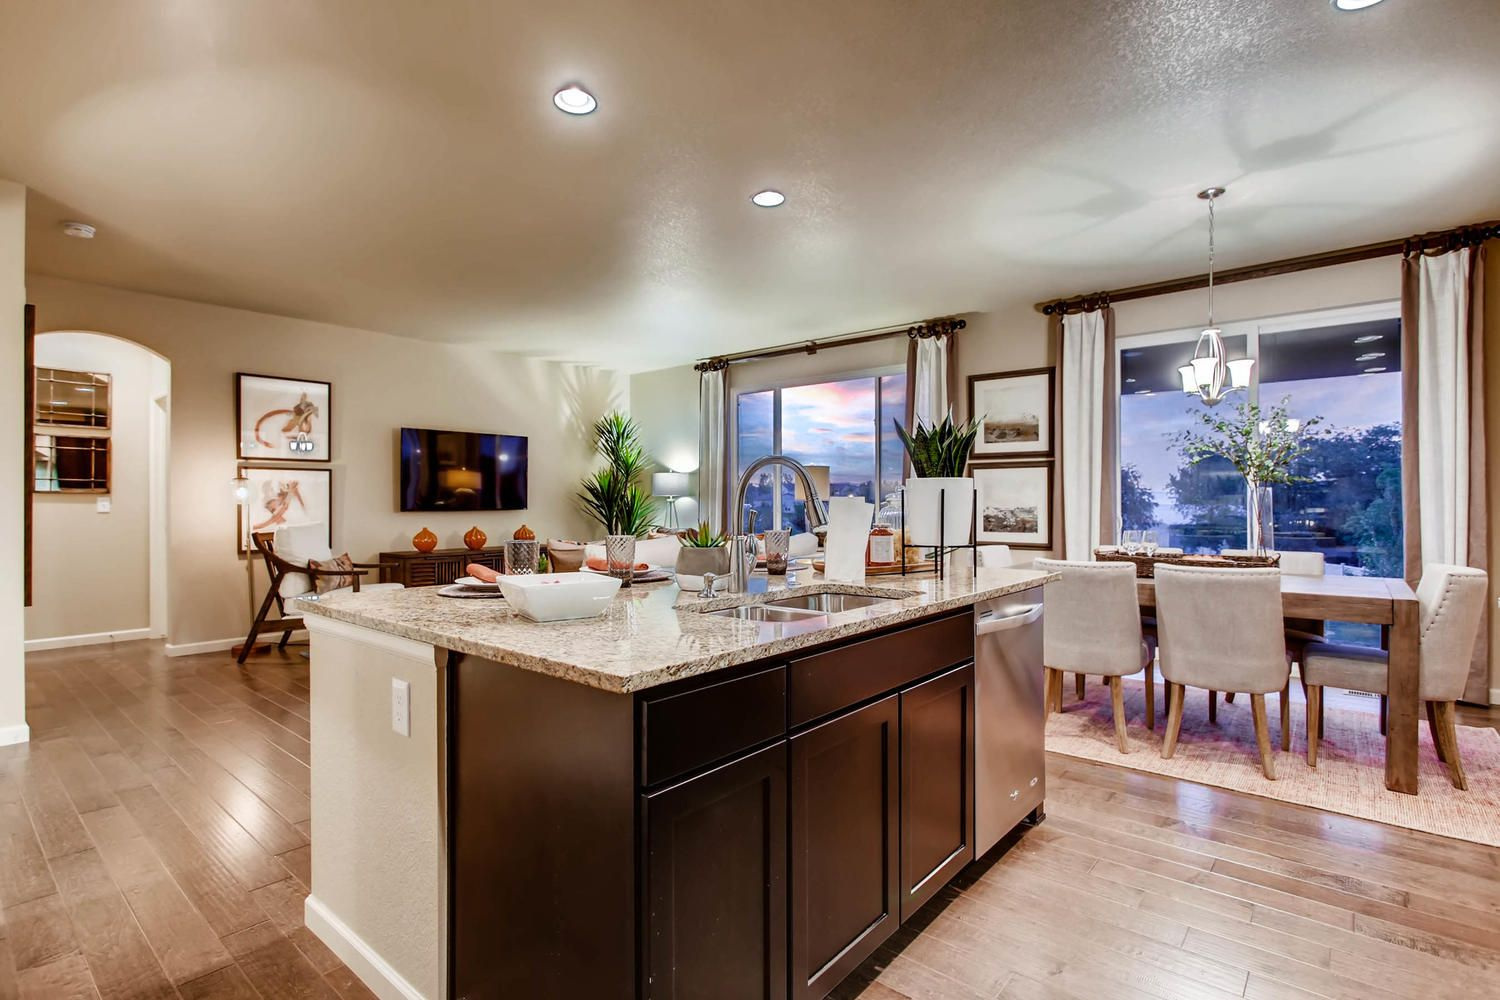 Kitchen Design At Our New Model Home Home Kitchen Design New Homes